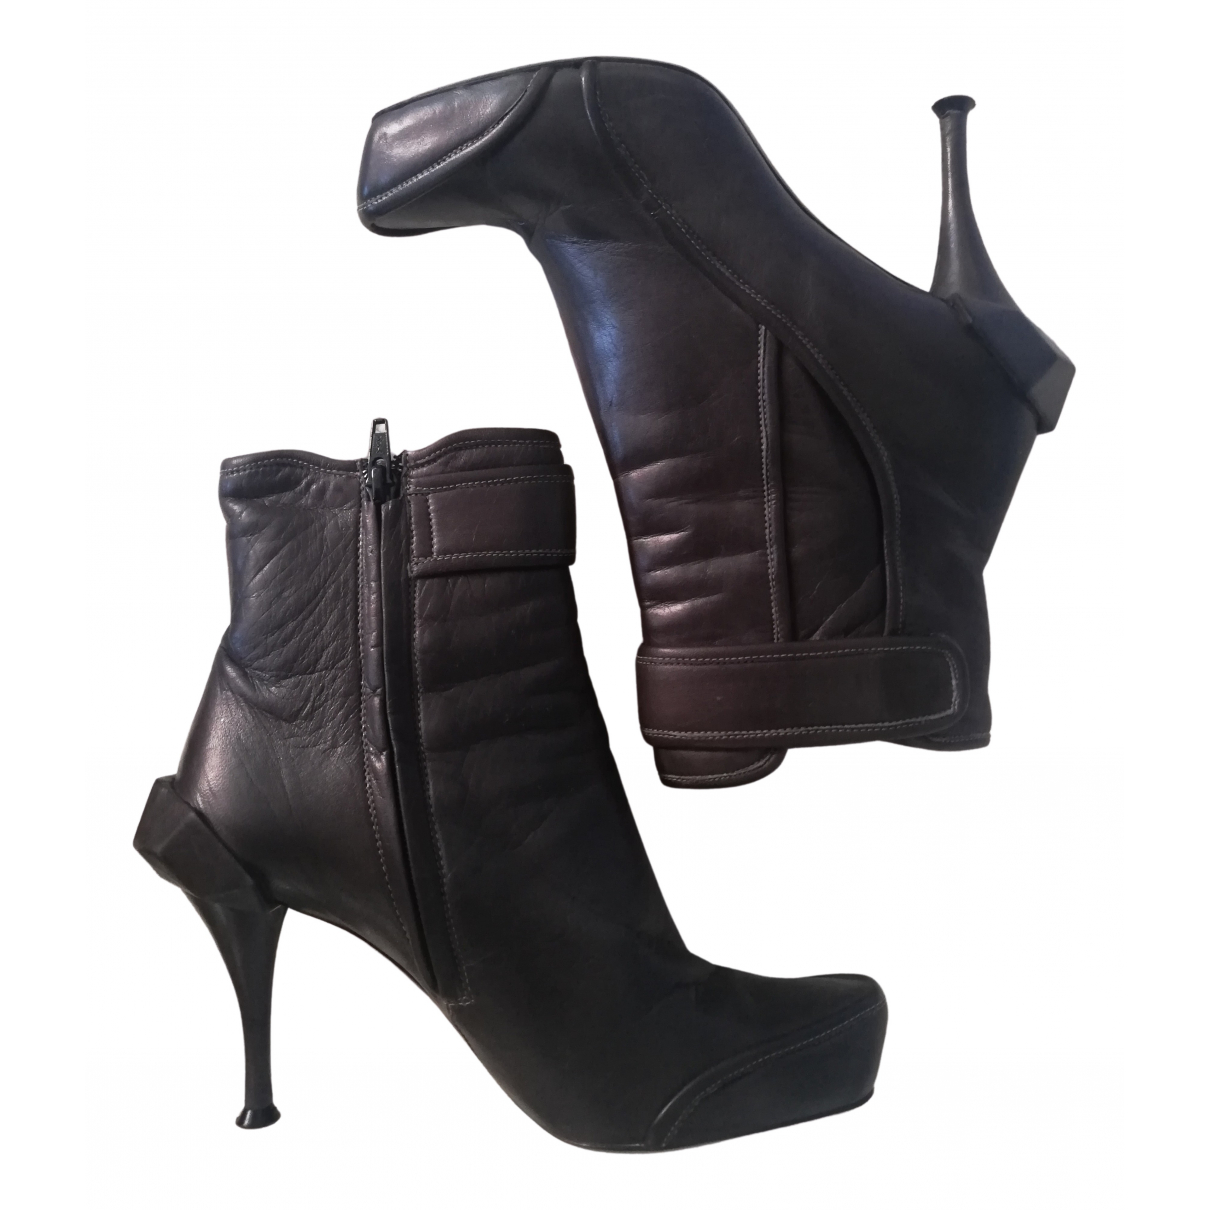 Celine N Grey Leather Boots for Women 36 EU